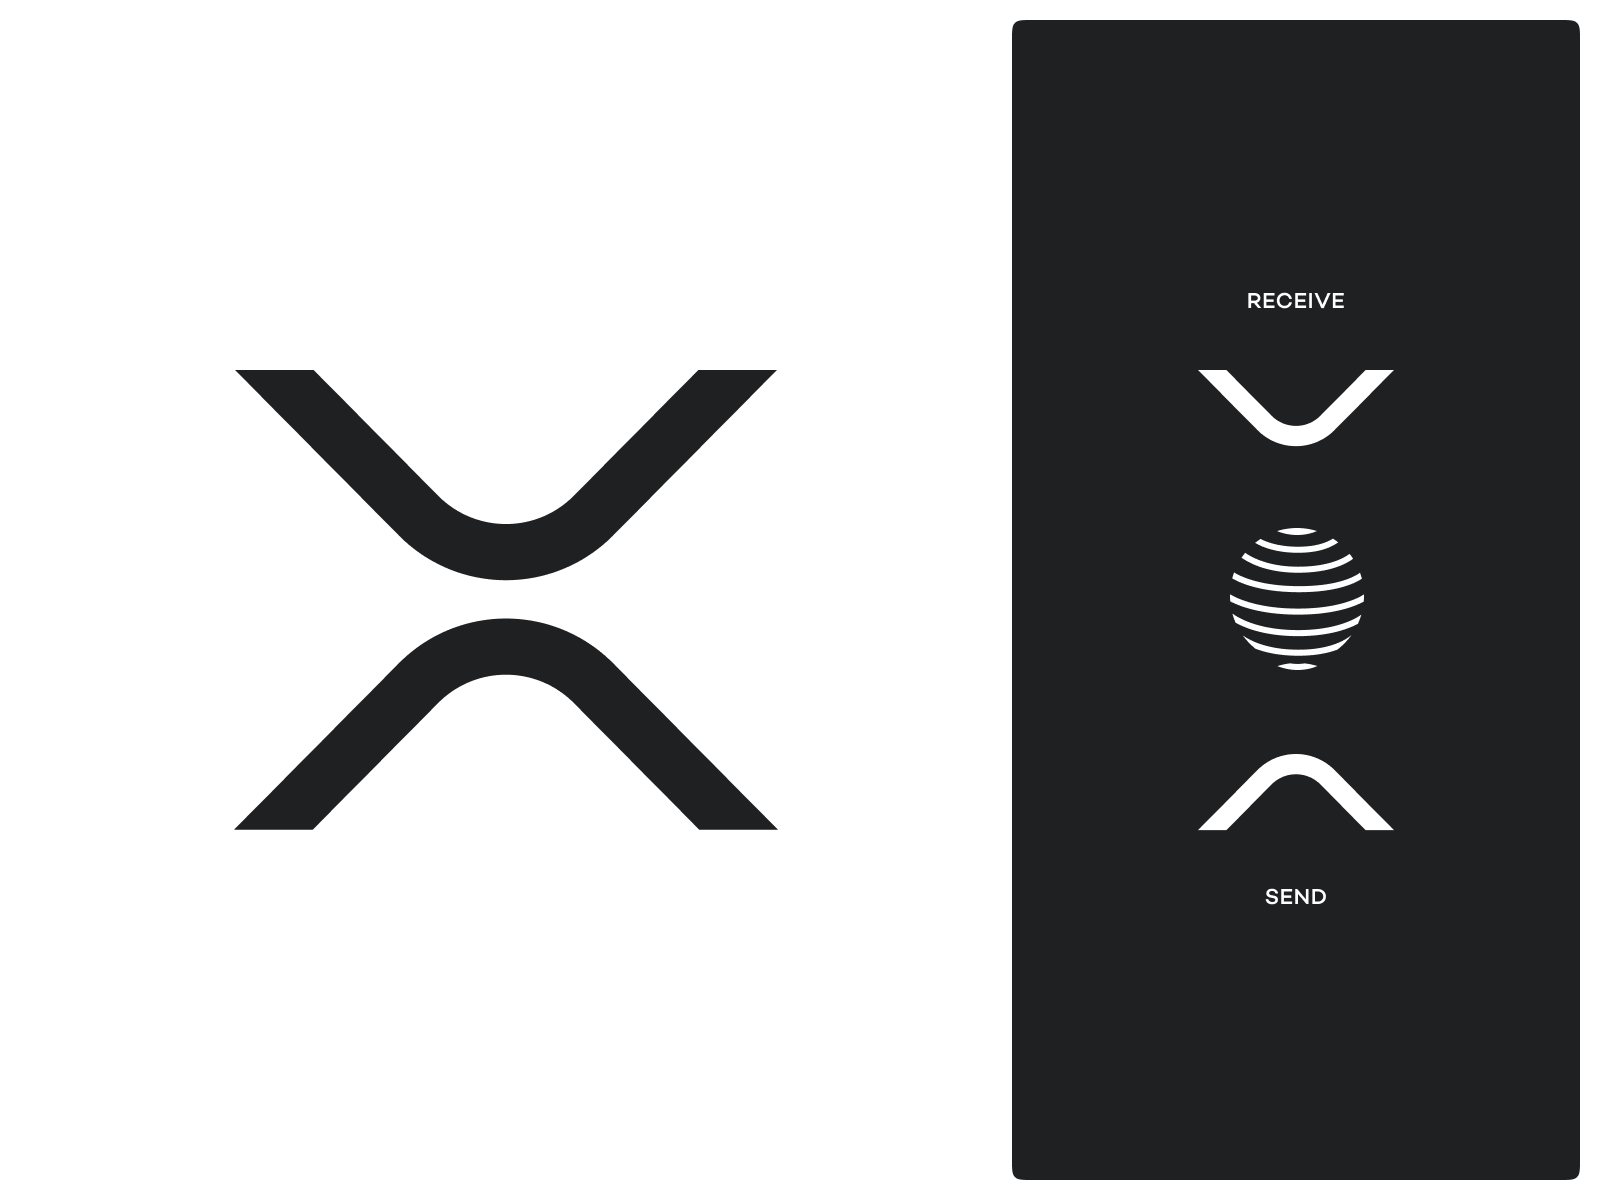 xrp symbol by eddie lobanovskiy for unfold on dribbble xrp symbol by eddie lobanovskiy for